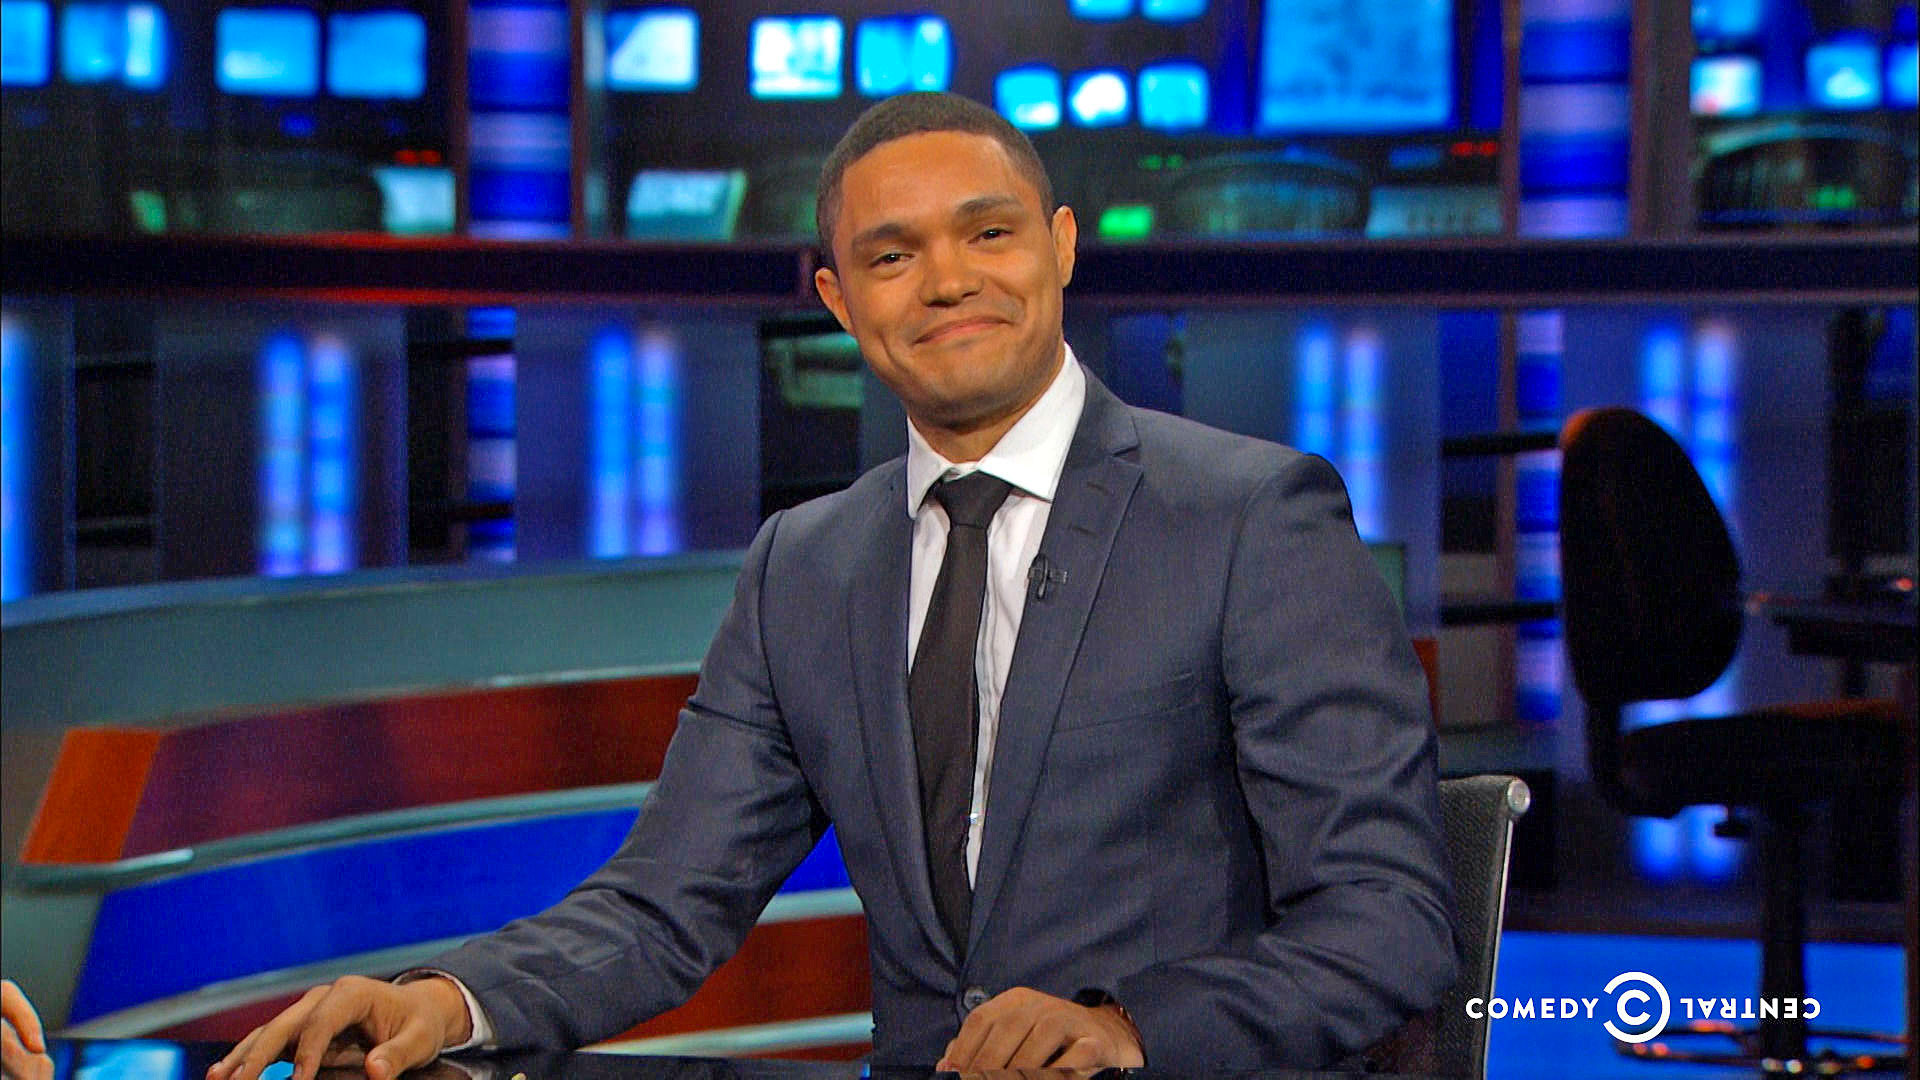 Comedy Central's Trevor Noah's Goodbye to Bill O'Reilly